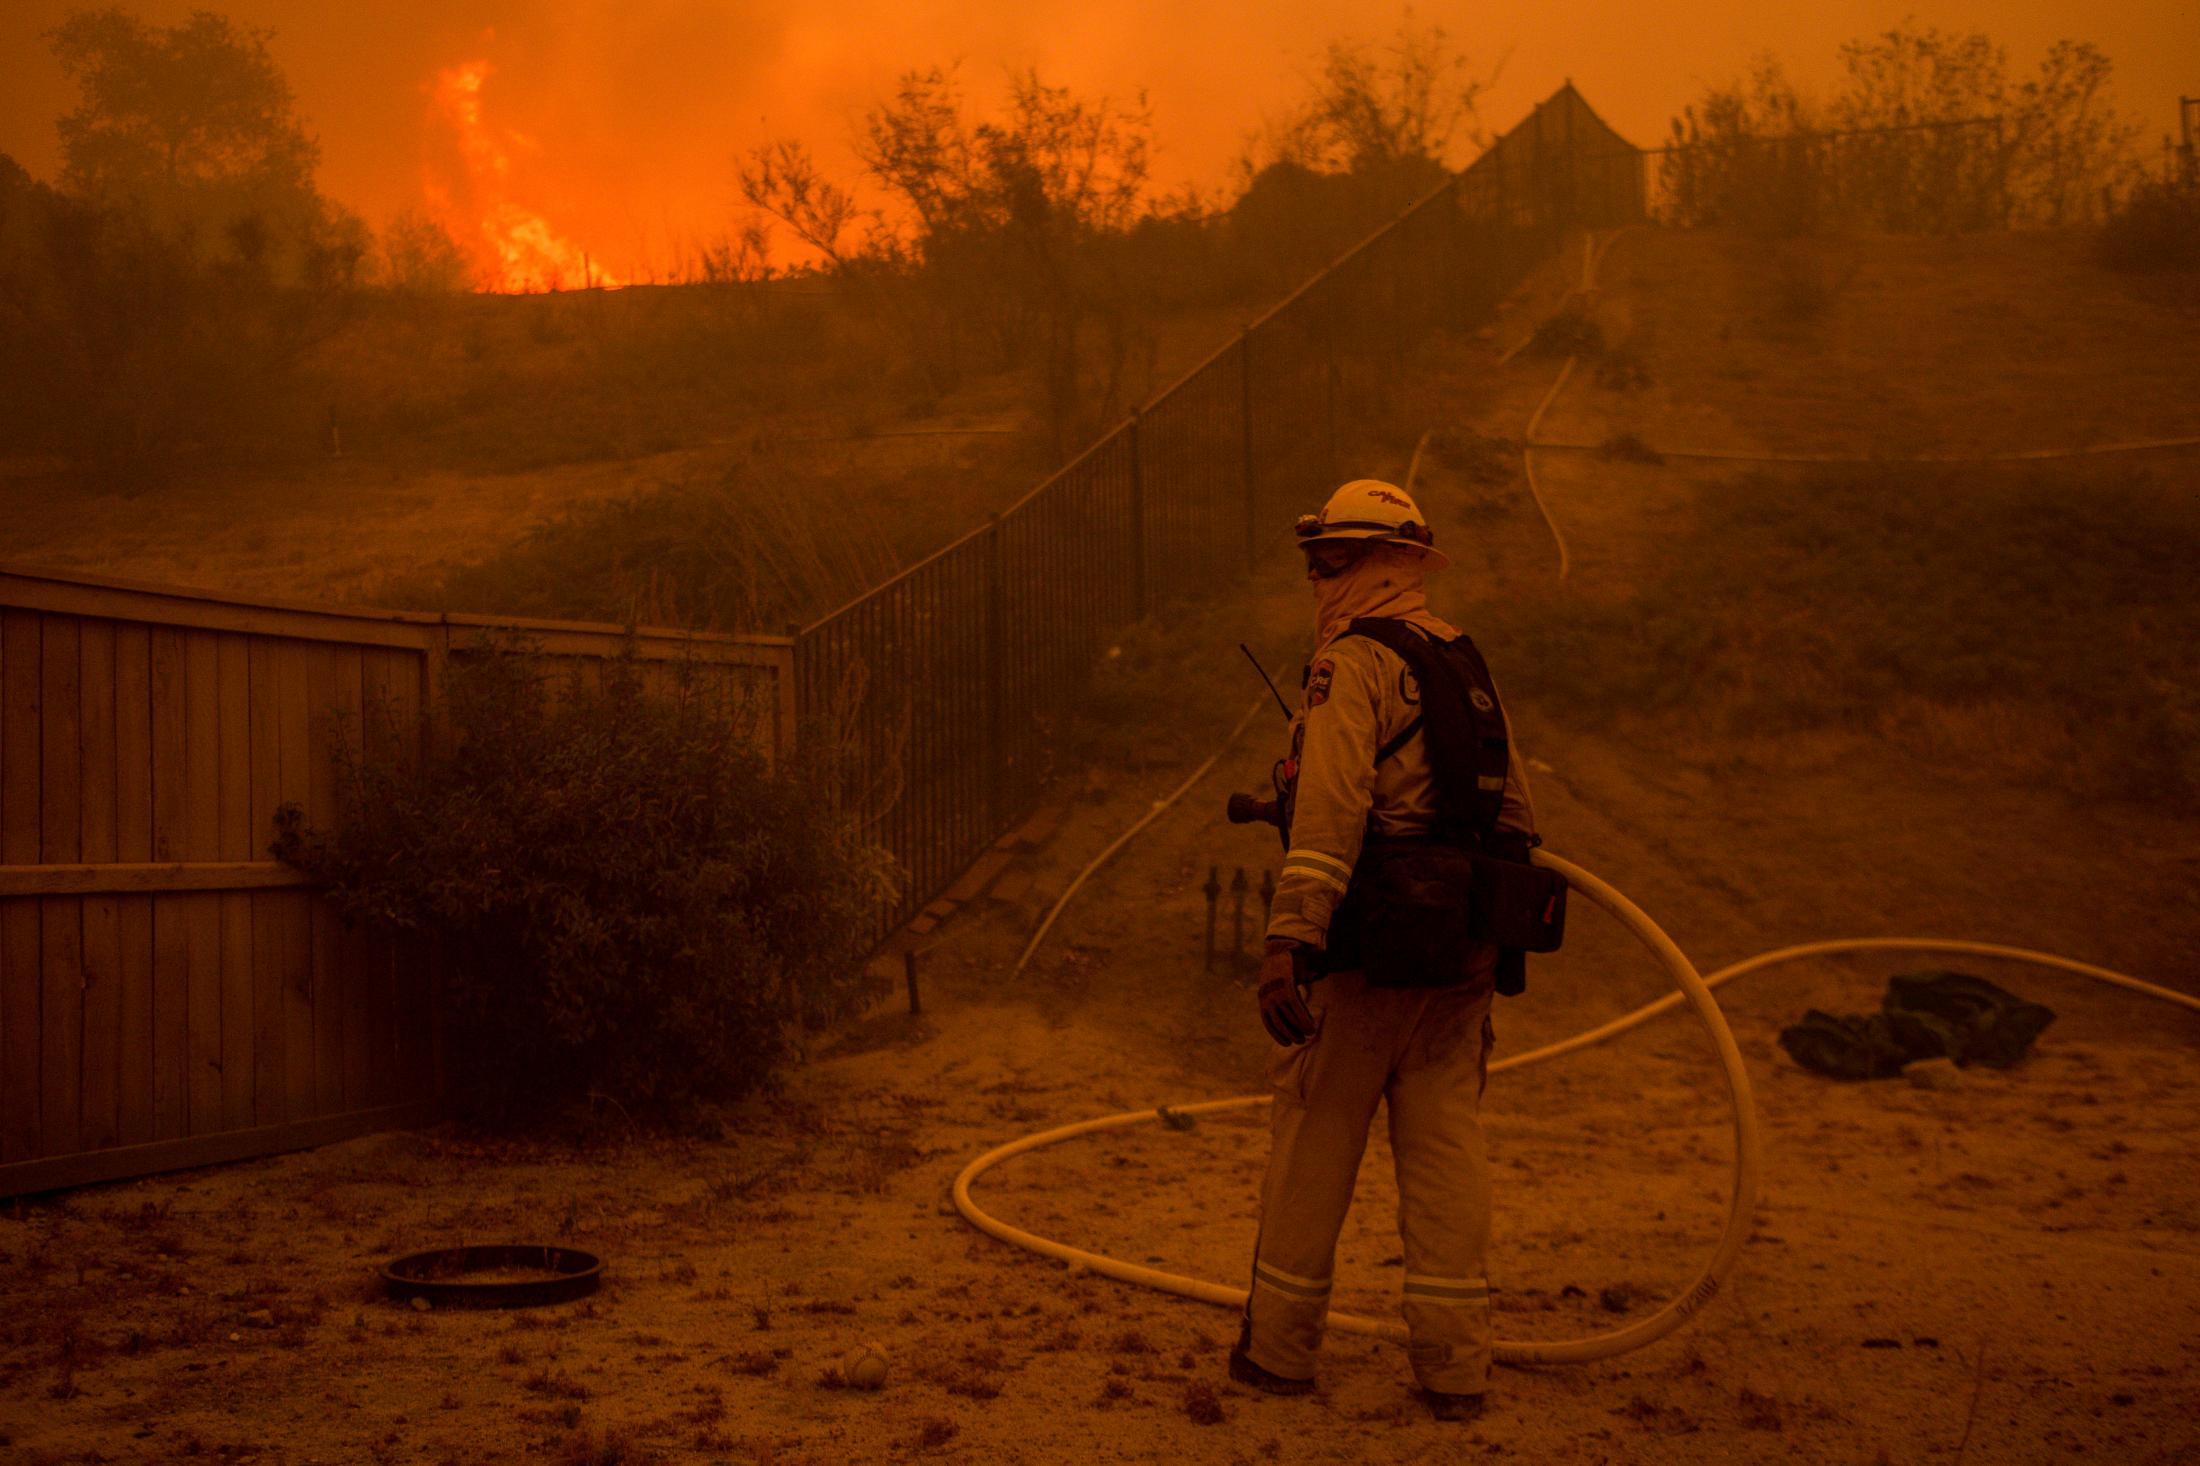 The state of California faced its worst fire season in history. One of the worst fires located in Los Angeles and Ventura County, named the Woolsey Fire. This wildfire burned; 96,949 acres and destroyed 1,643 structures. Three people reported to have died in the blaze, and over a quarter-million evacuated. A firefighter carries a house form a fire truck into the backyard of a house, becoming a frontline in the fight of this wildfire.